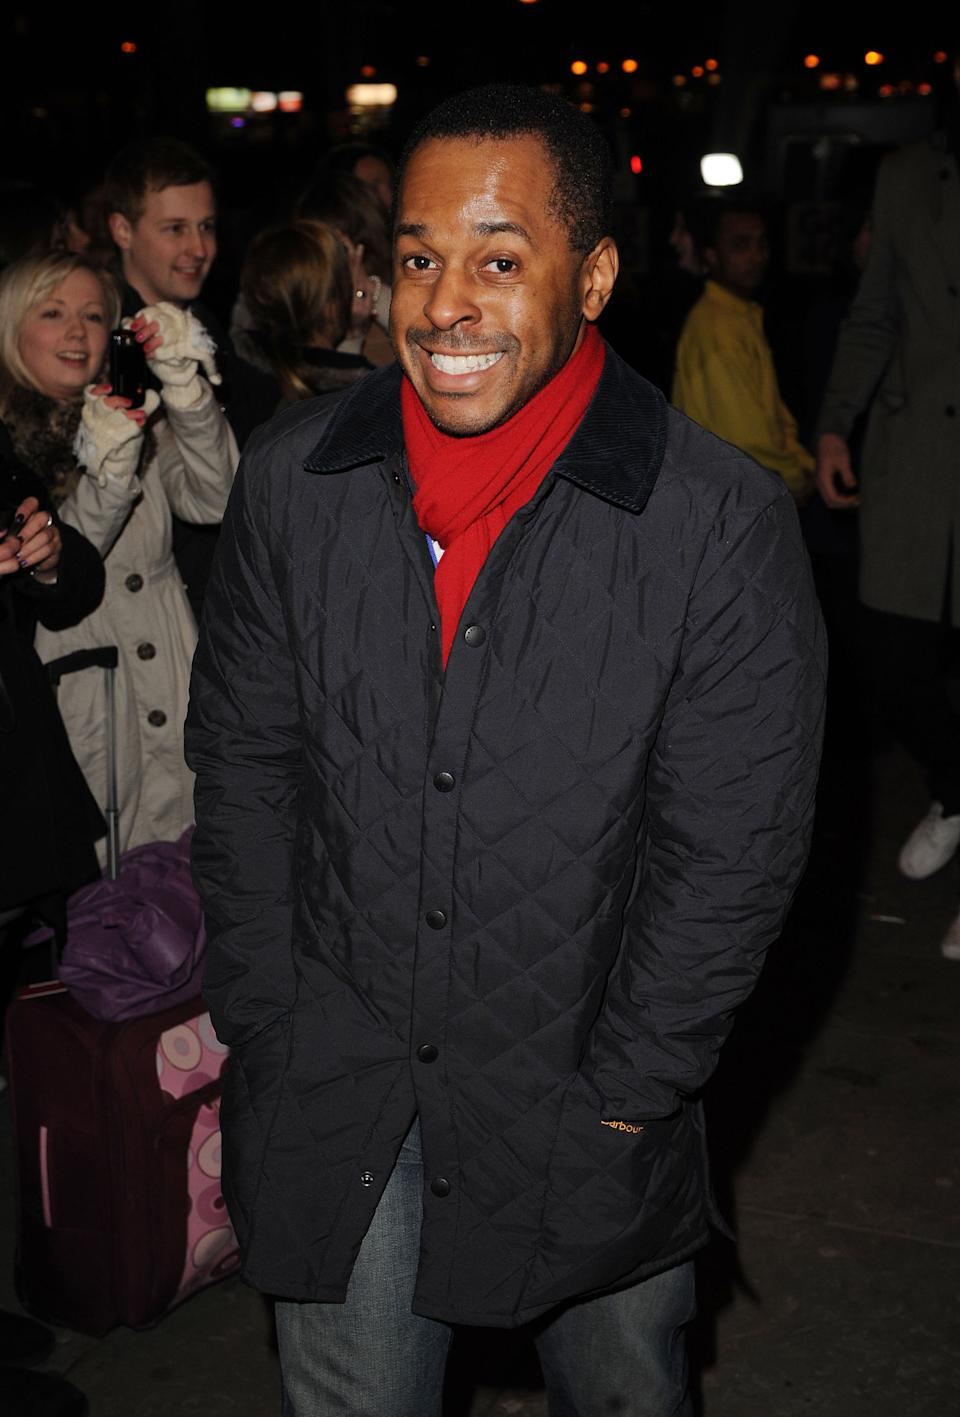 Andi Peters arrives at Gary Barlow's 40th Birthday Concert at Shepherds Bush Empire on January 20, 2011 in London, England. (Photo by Eamonn McCormack/WireImage)